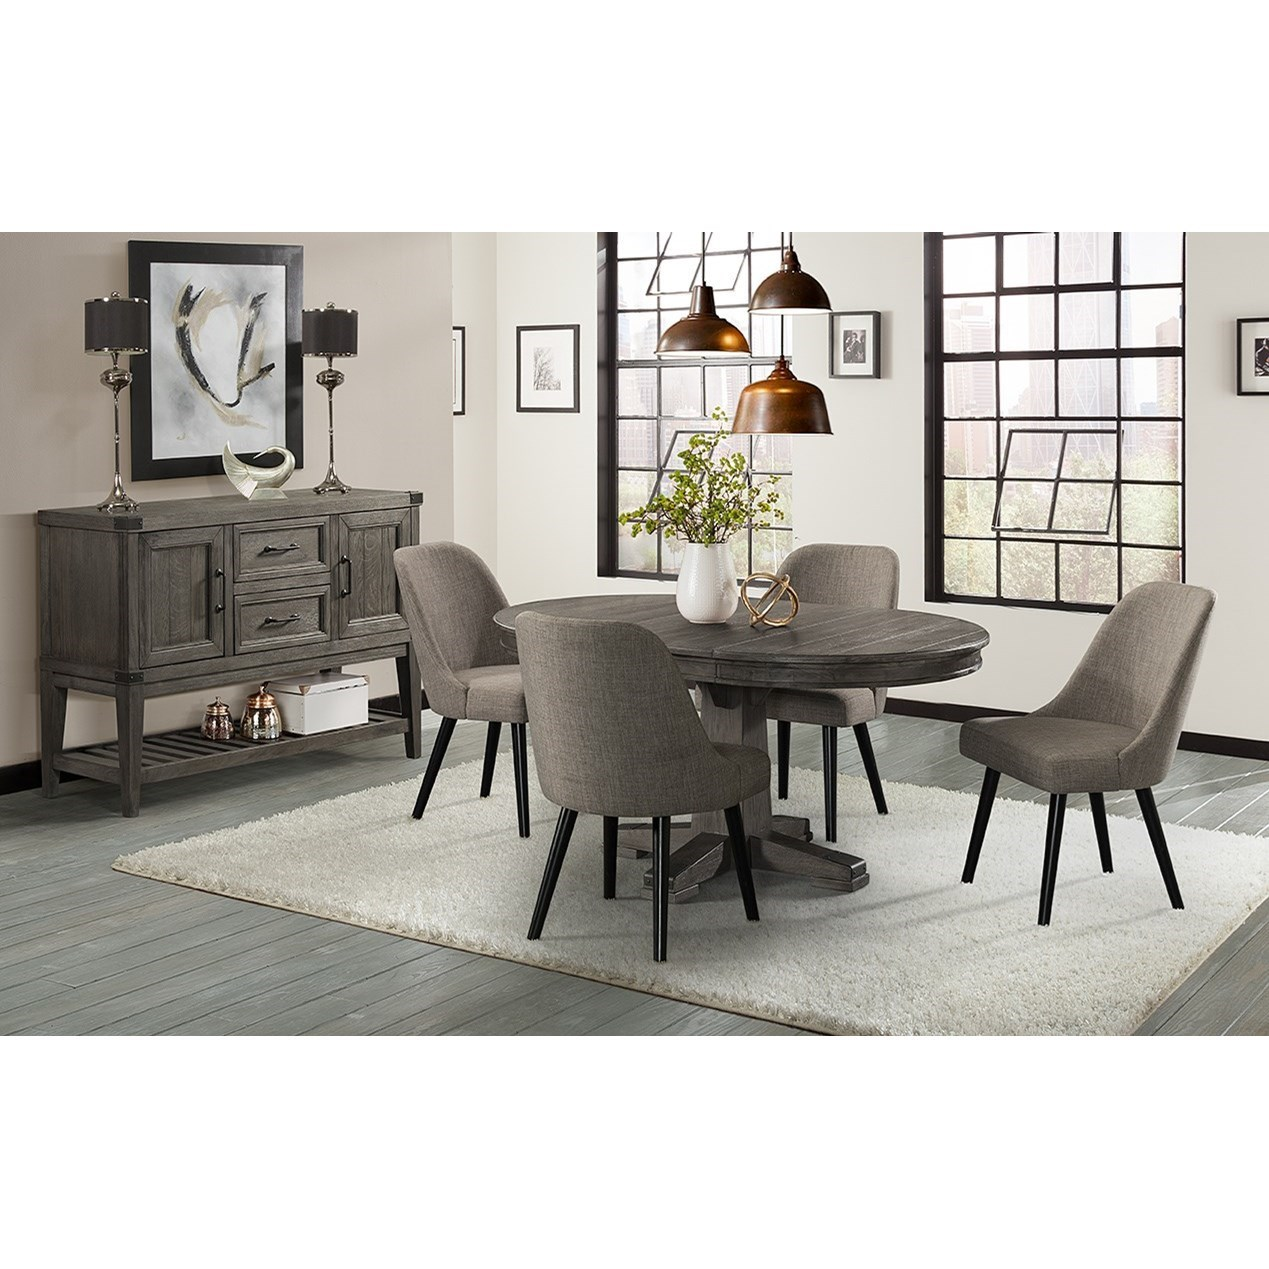 Casual Dining Room Furniture: Intercon Foundry Casual Dining Room Group